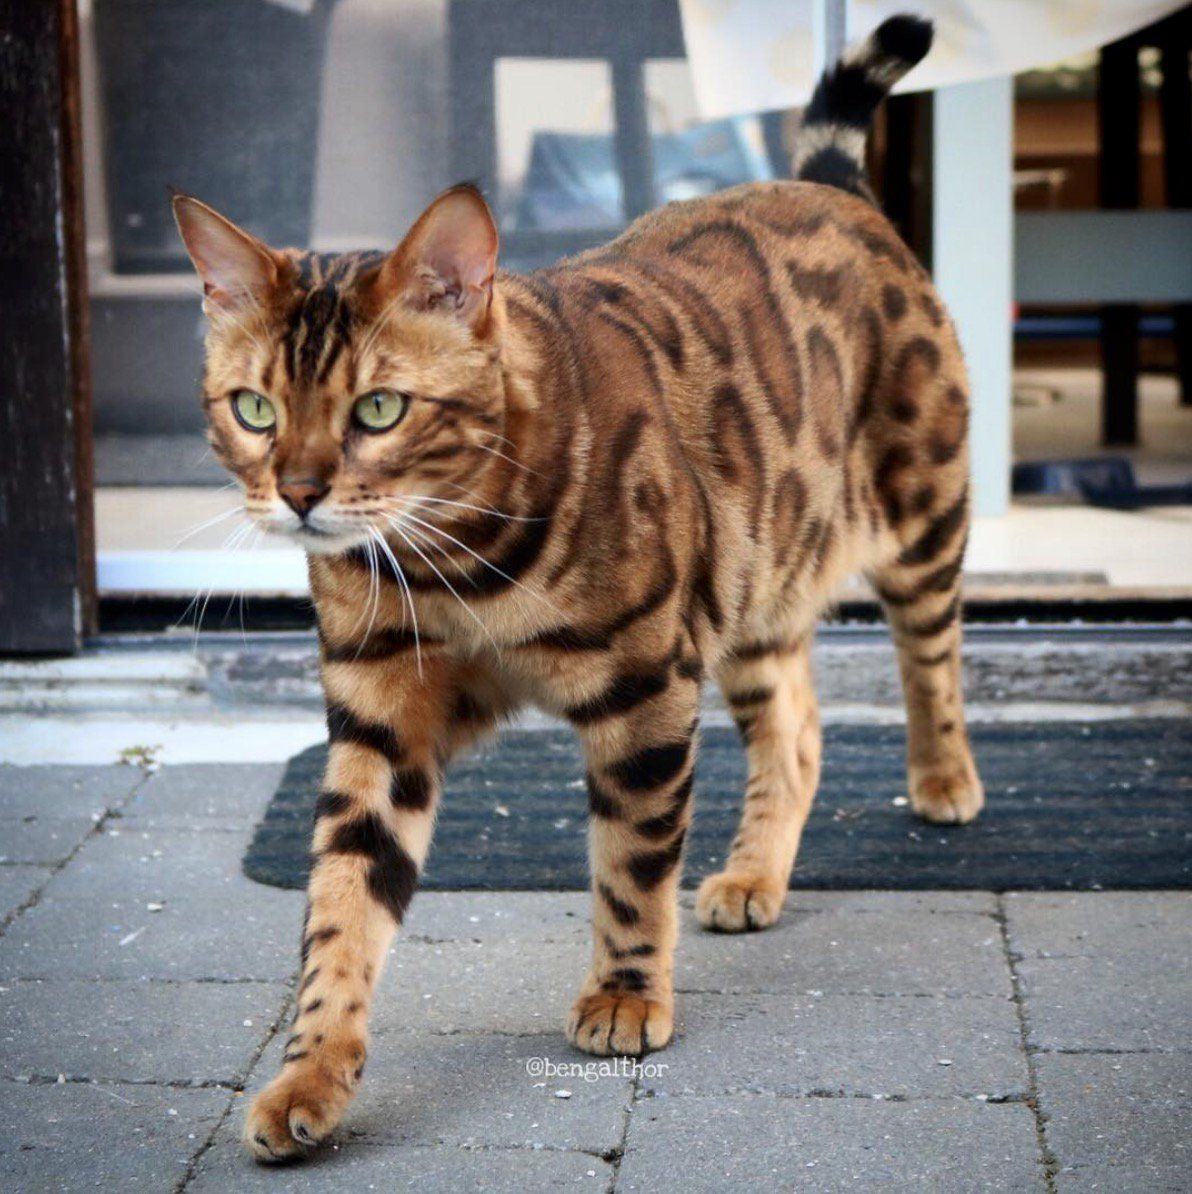 Cat Born With Incredible Tiger Stripes Is So Beautiful People Don T Believe He S Real Cats Unique Cats Norwegian Forest Kittens